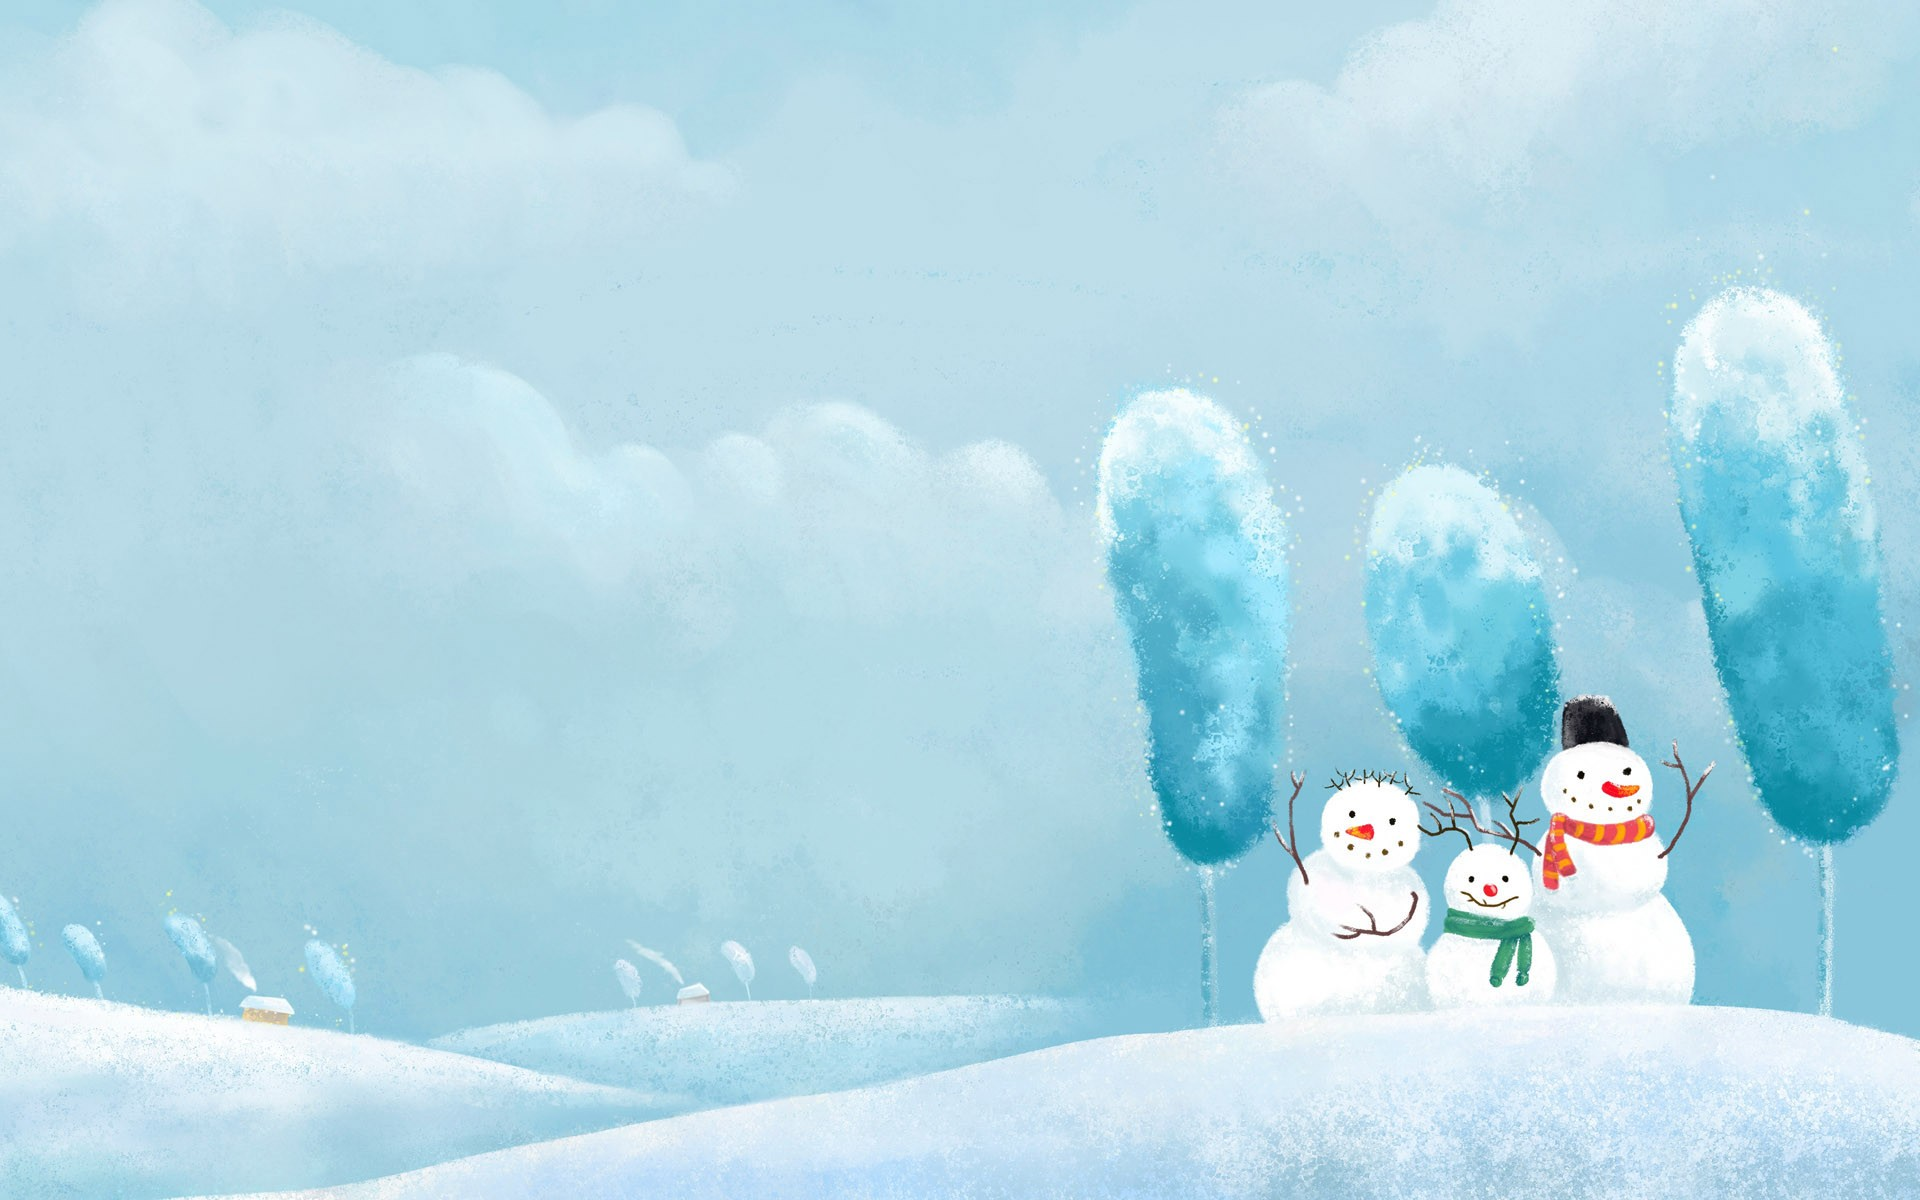 Winter Snowman Screensavers wallpaper wallpaper hd 1920x1200